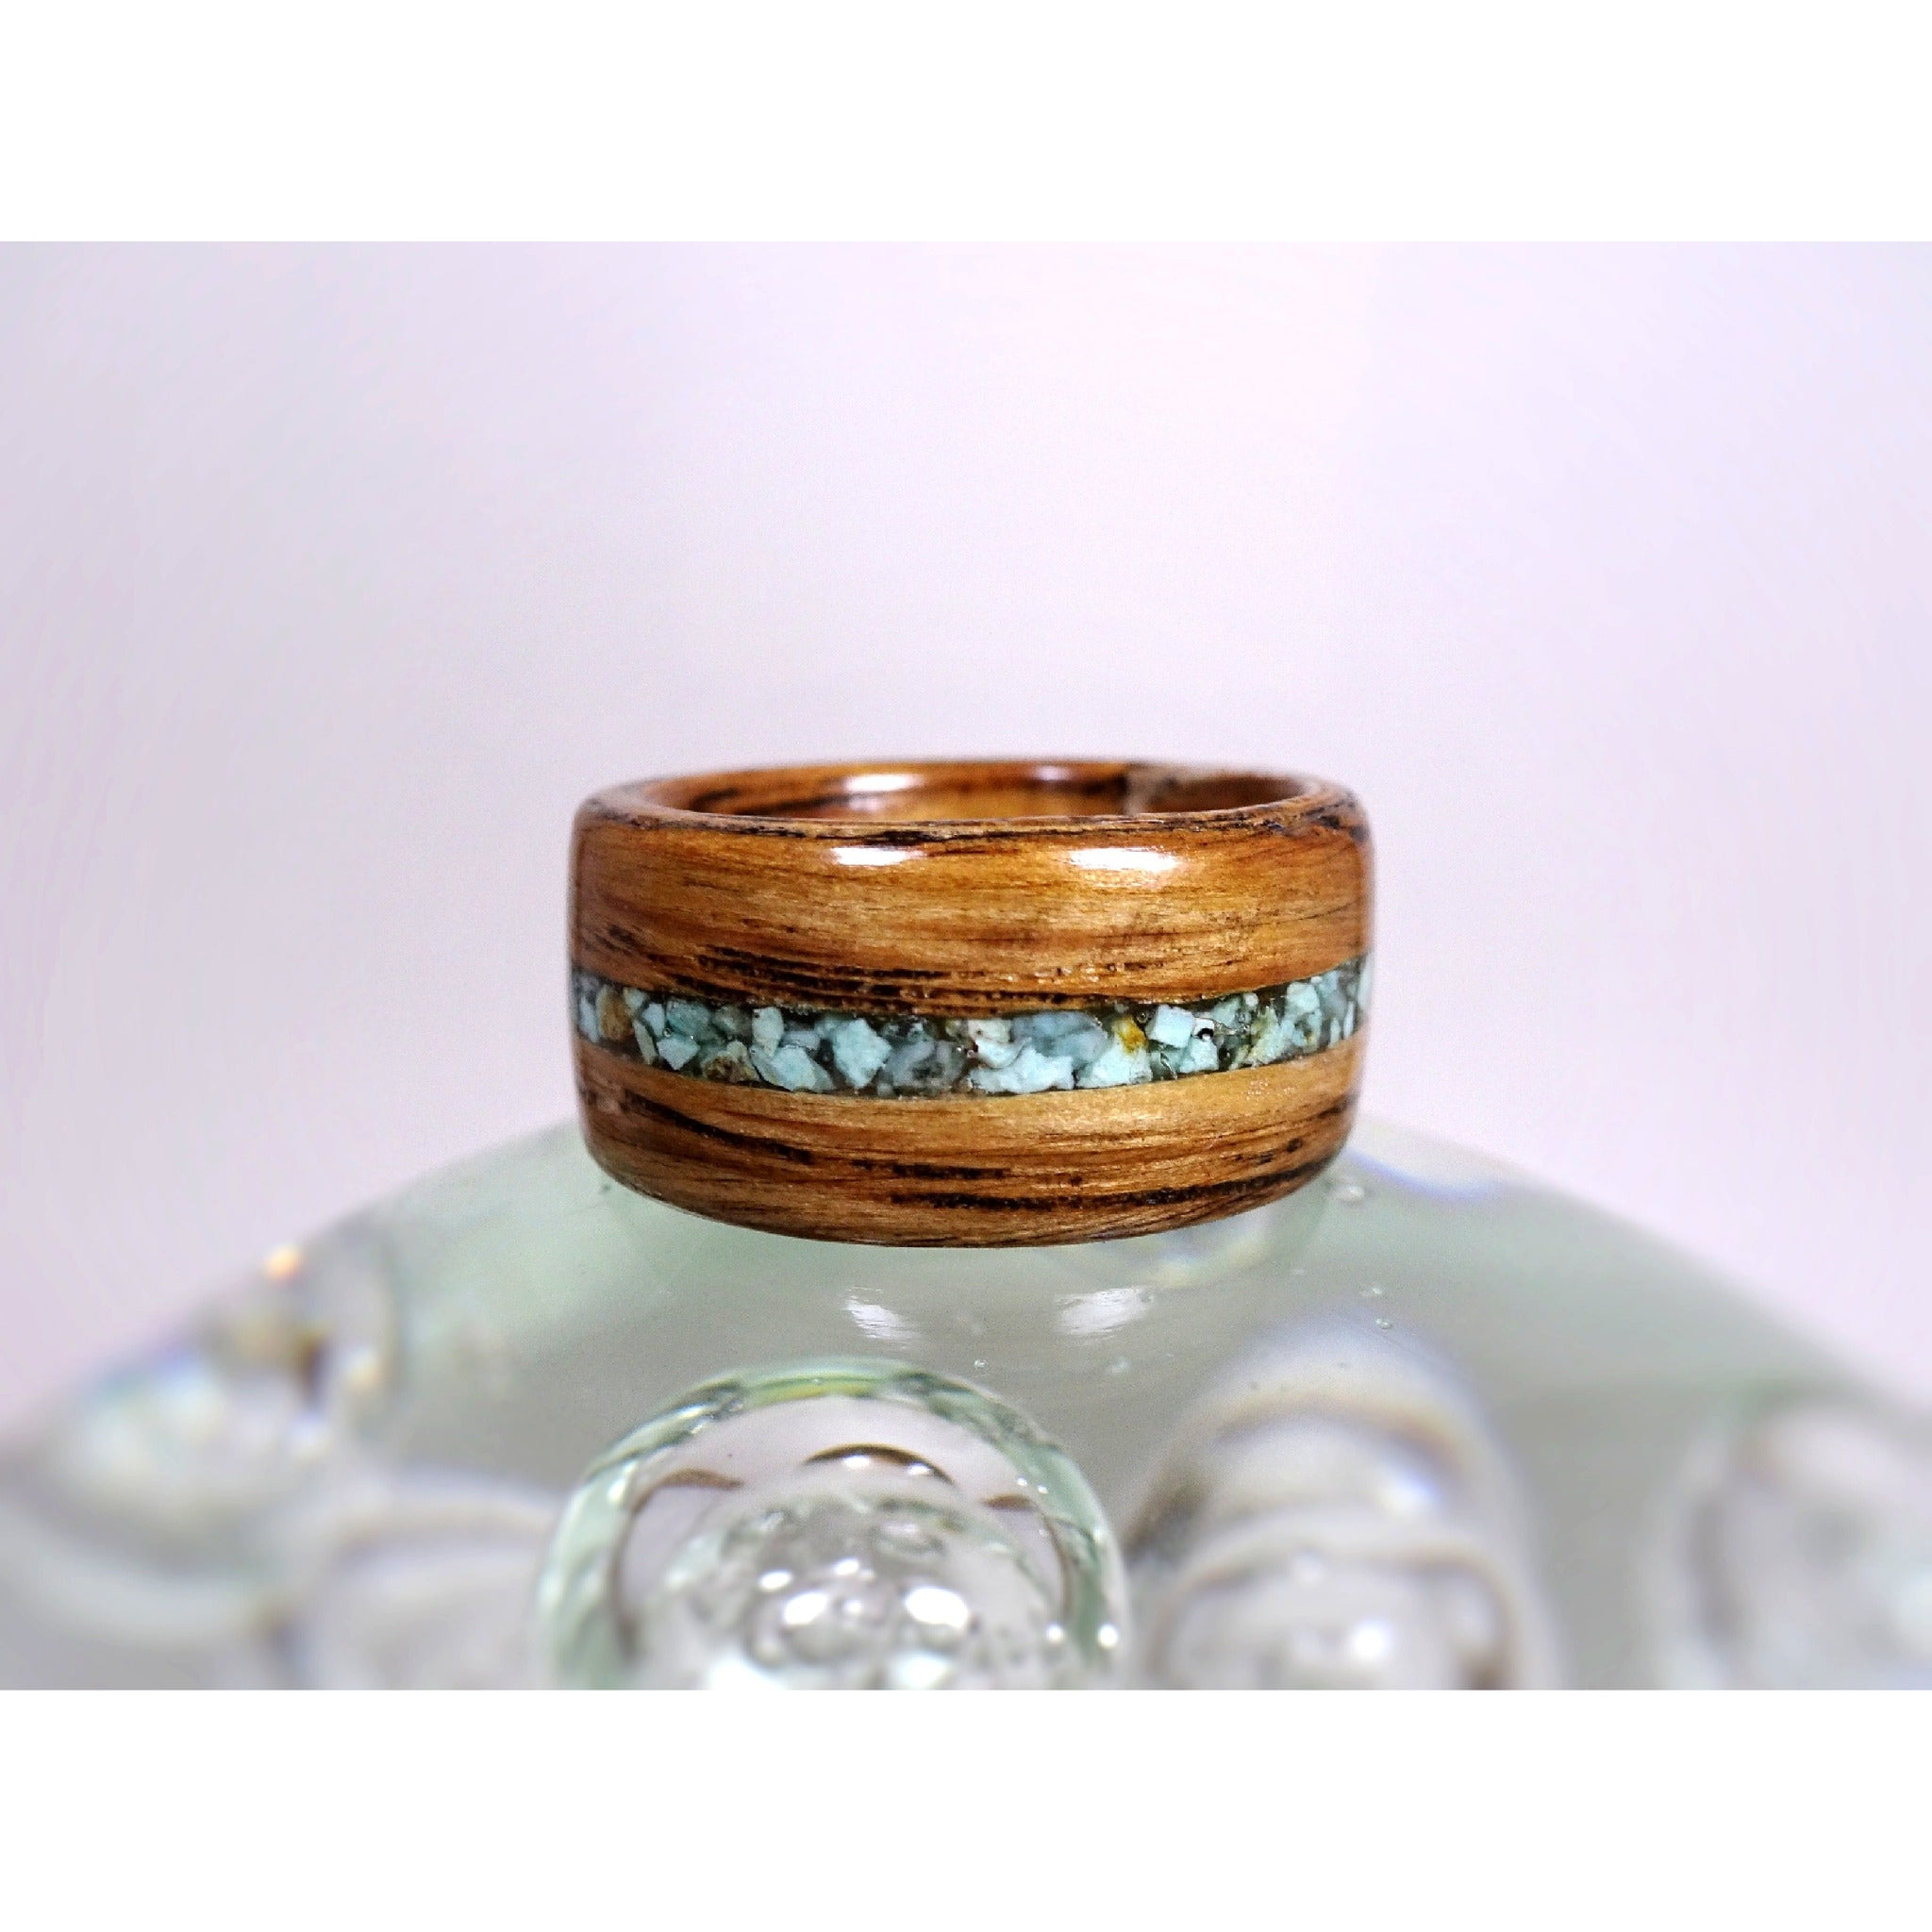 Tennessee Whiskey Barrel Bentwood Ring with Turquoise Inlay - Jack Daniels Barrel Wood Ring - Art and Soule